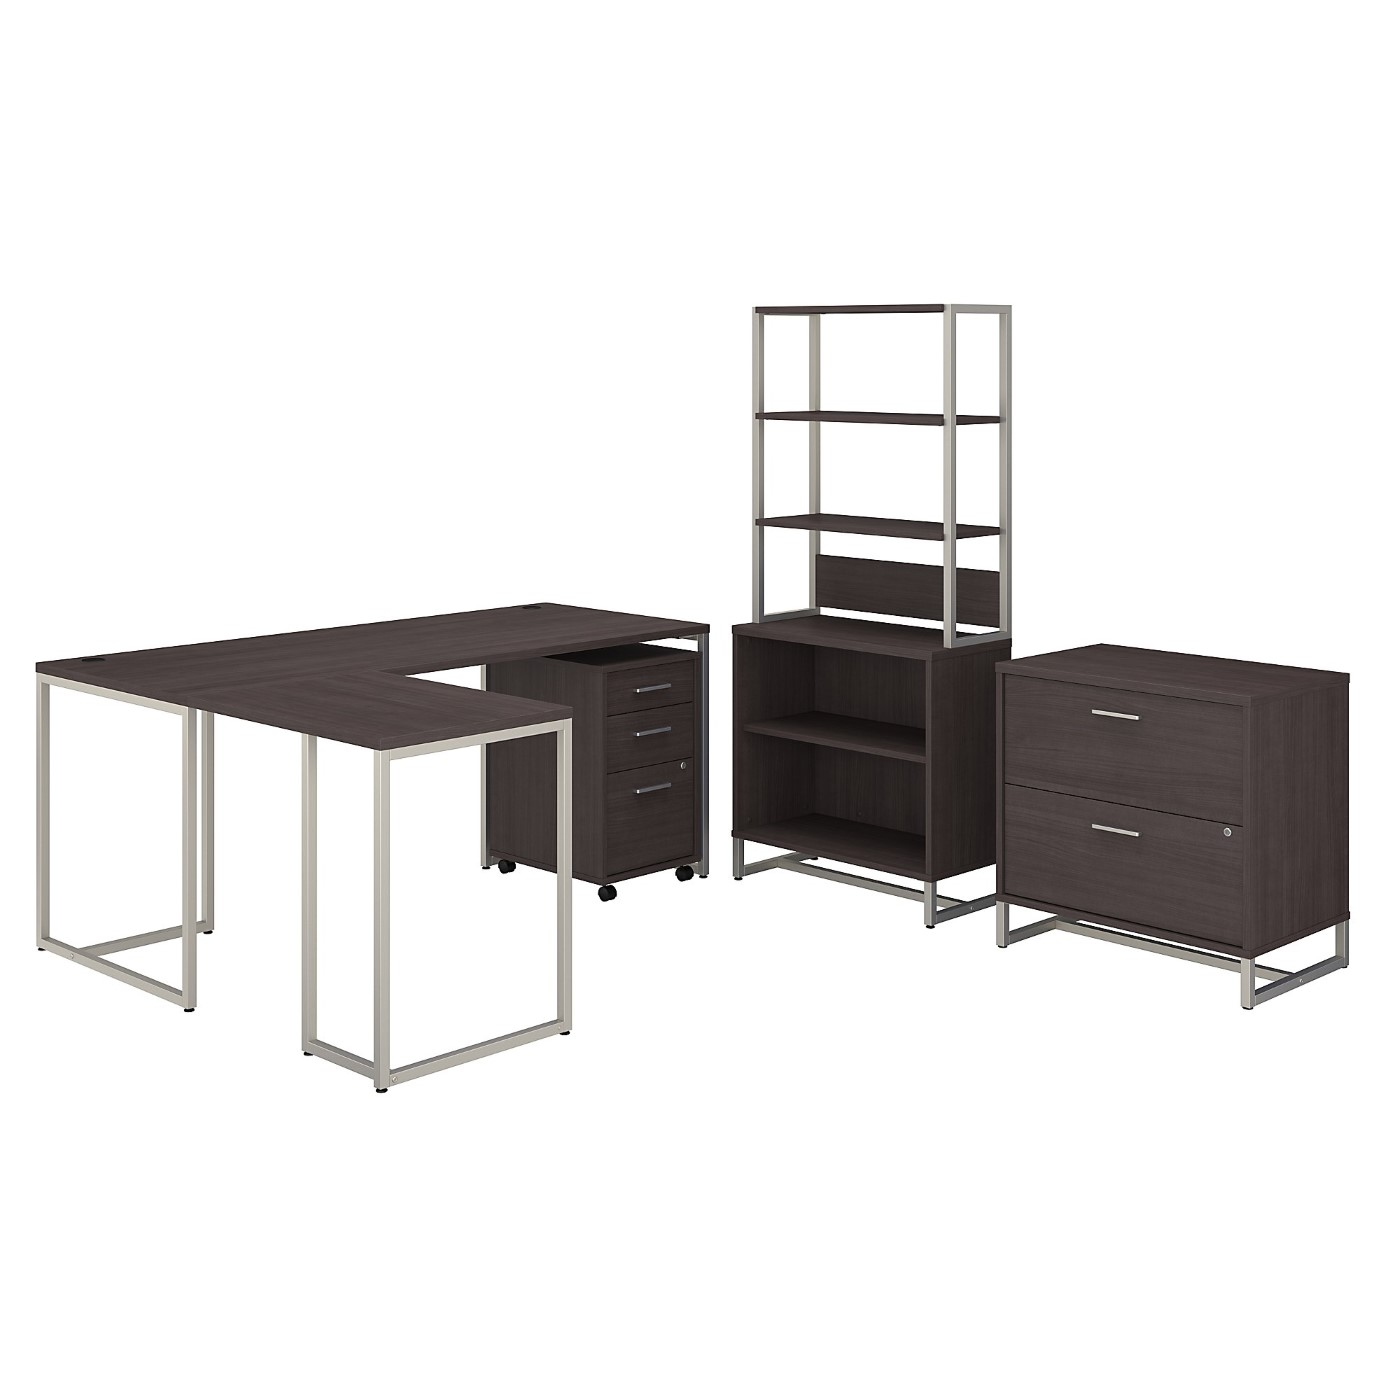 OFFICE BY KATHY IRELAND� METHOD 72W L SHAPED DESK WITH 30W RETURN, FILE CABINETS AND BOOKCASE. FREE SHIPPING